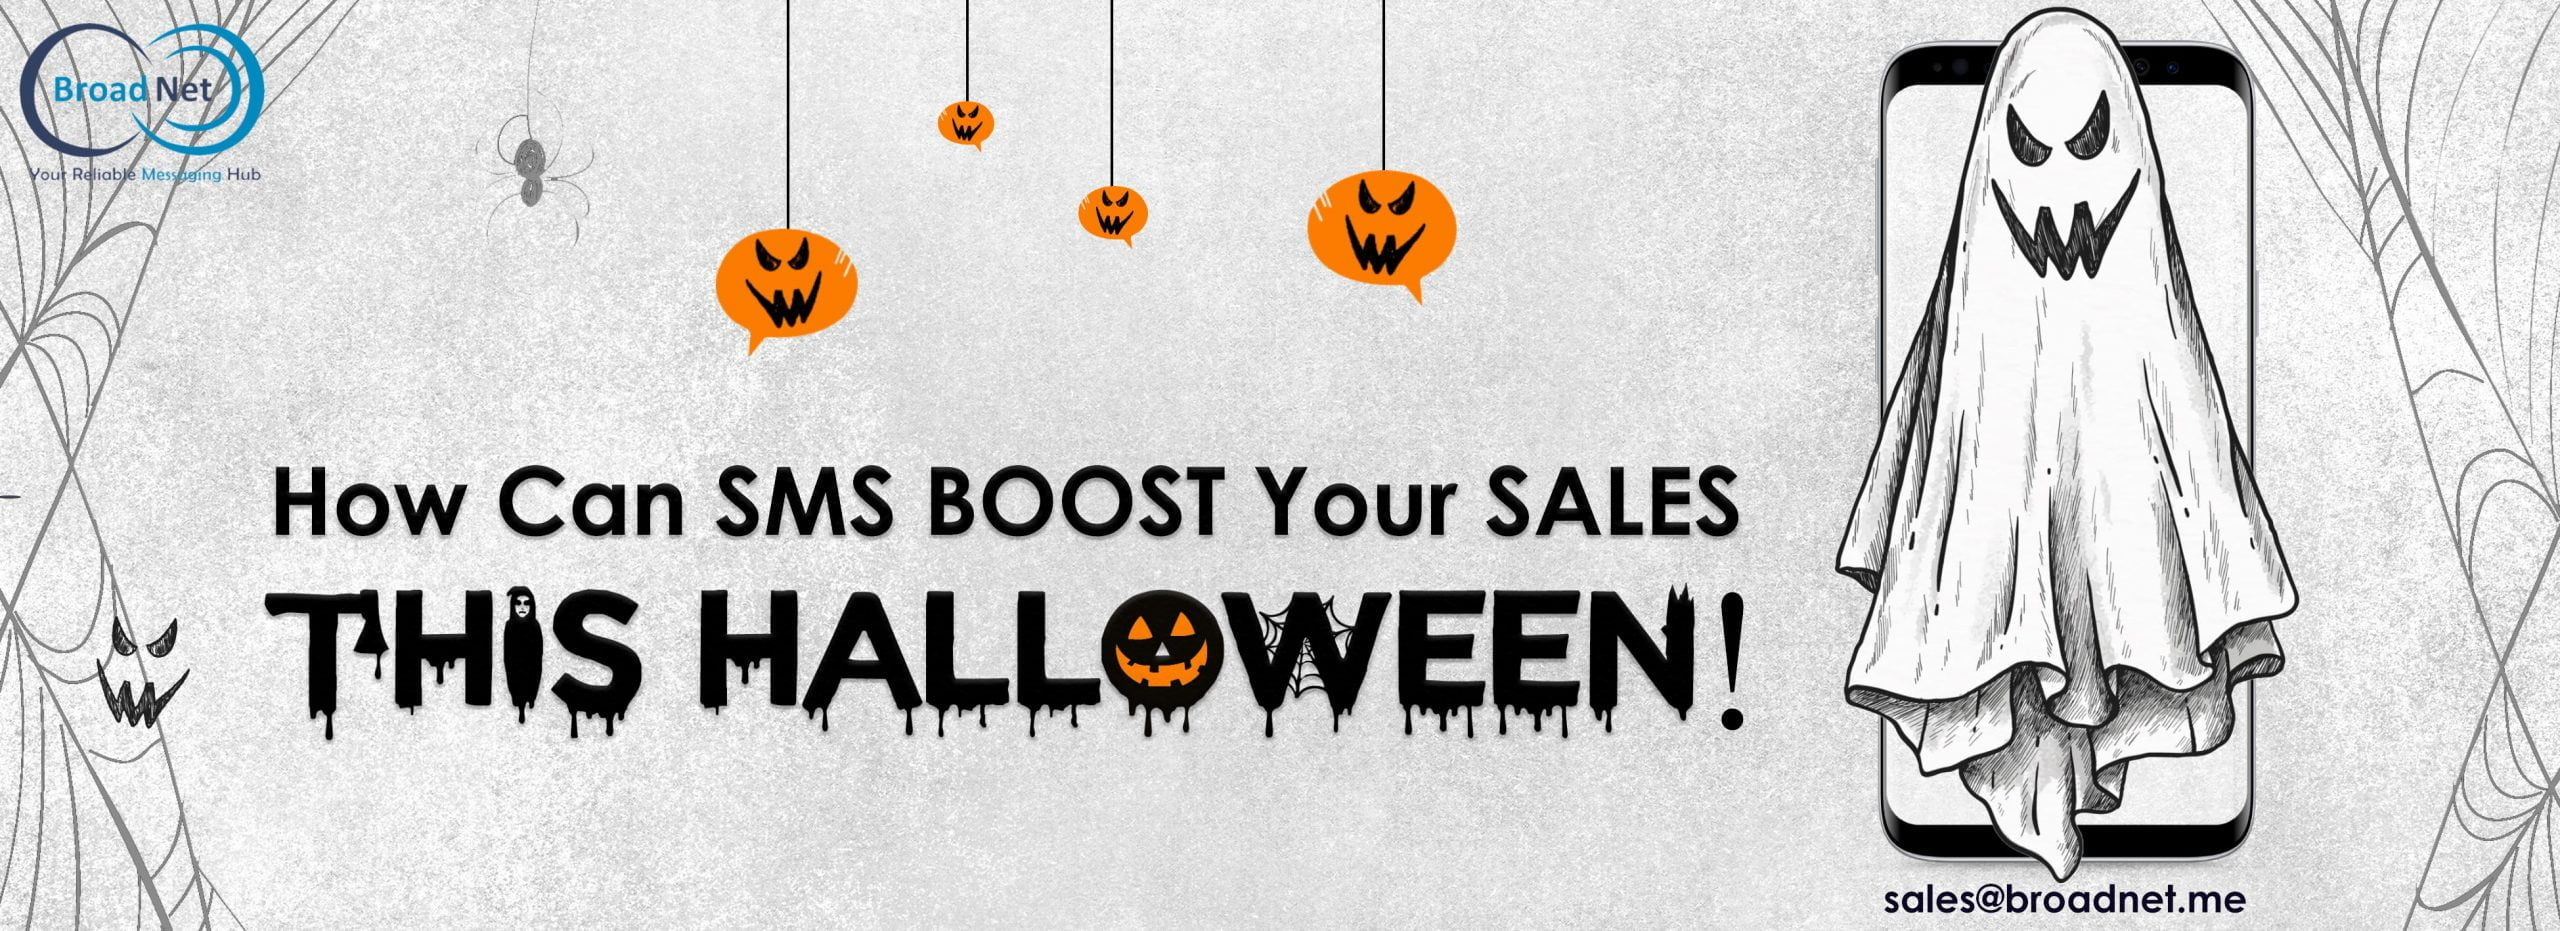 HOW CAN SMS BOOST YOUR SALES THIS HALLOWEEN?